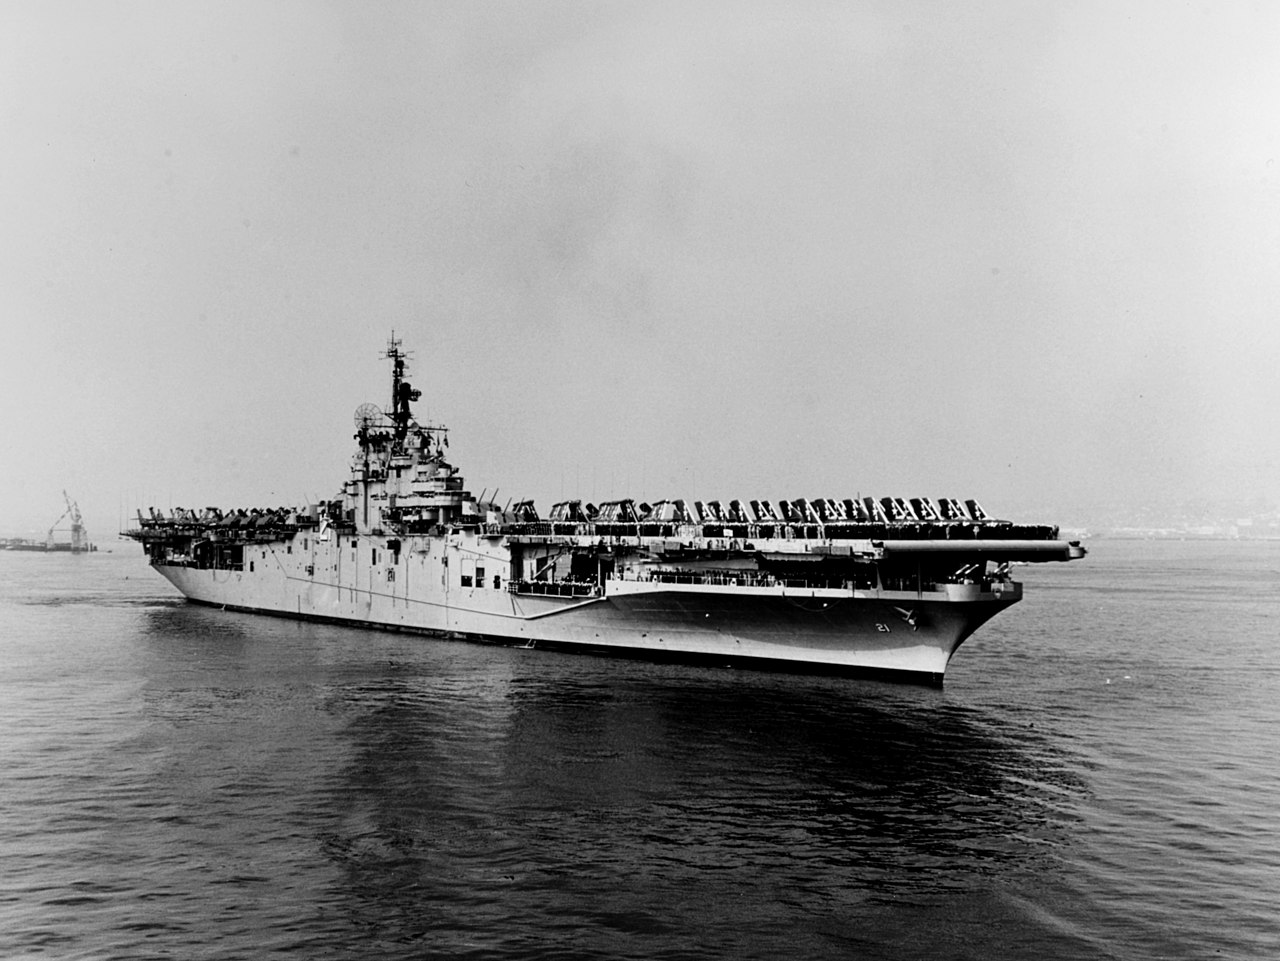 https://upload.wikimedia.org/wikipedia/commons/thumb/b/bf/USS_Boxer_%28CVA-21%29_in_port_in_1954.jpg/1280px-USS_Boxer_%28CVA-21%29_in_port_in_1954.jpg